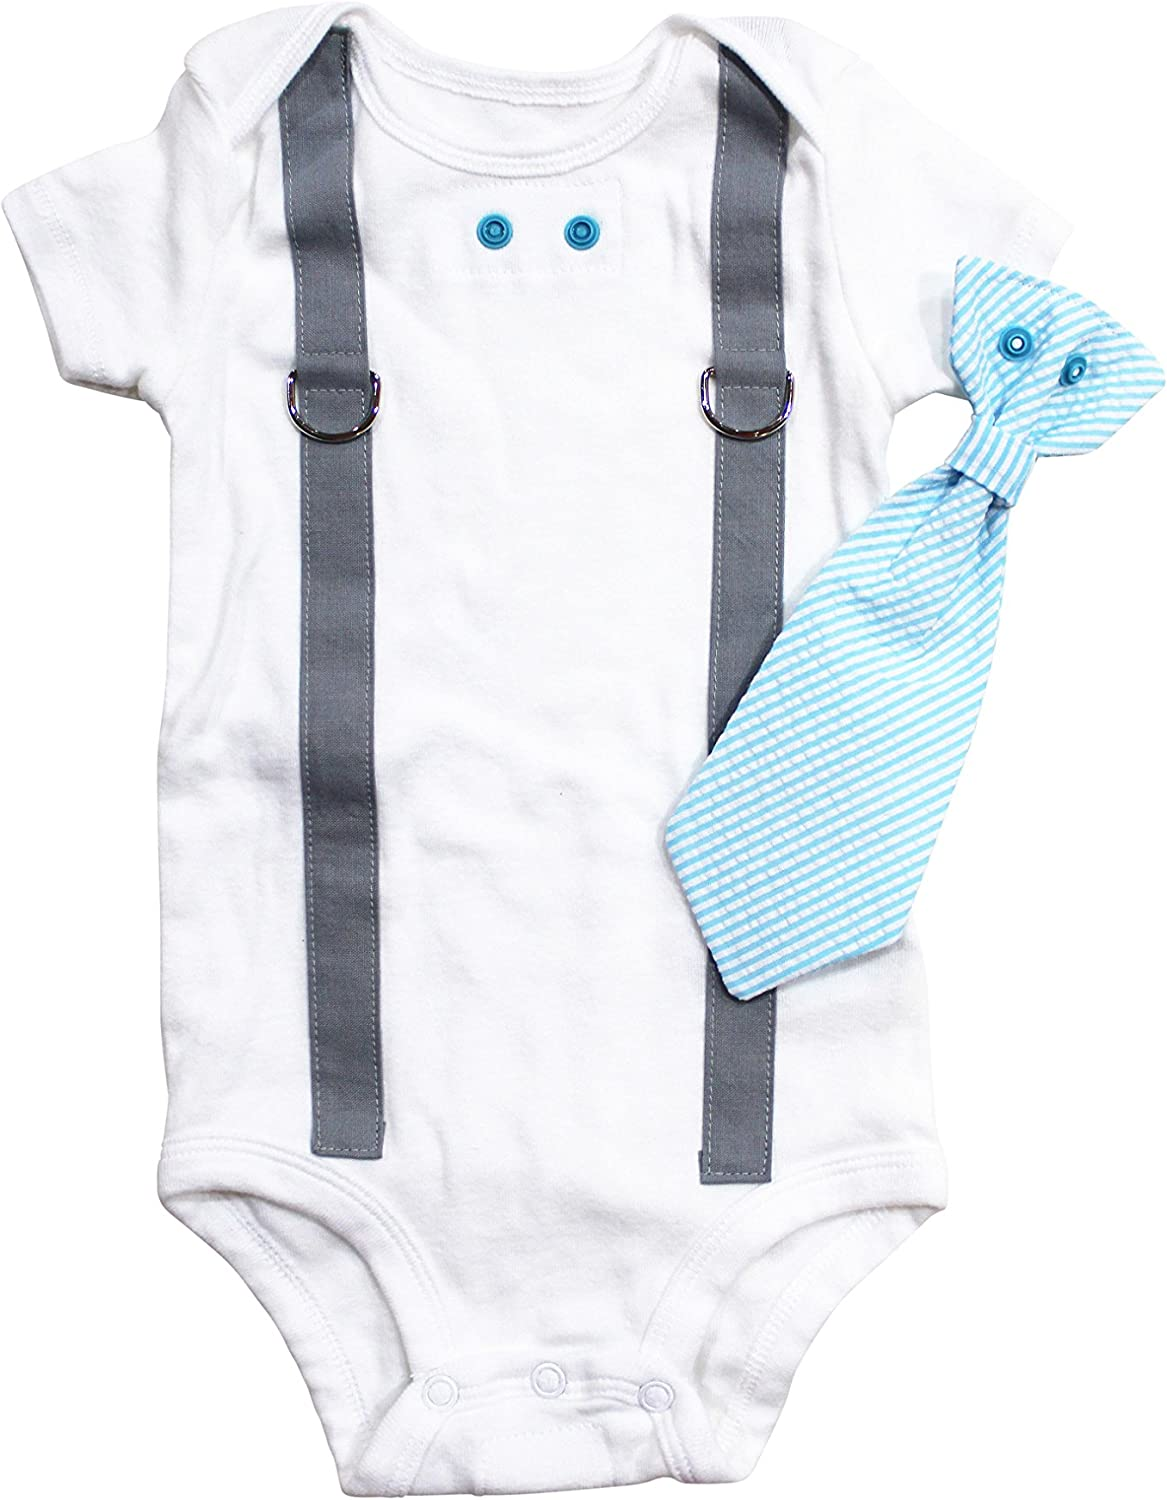 Tie and Suspenders with White Pants Christening Outfits for Boys Cuddle Sleep Dream Baby Boy Baptism Outfit Cotton